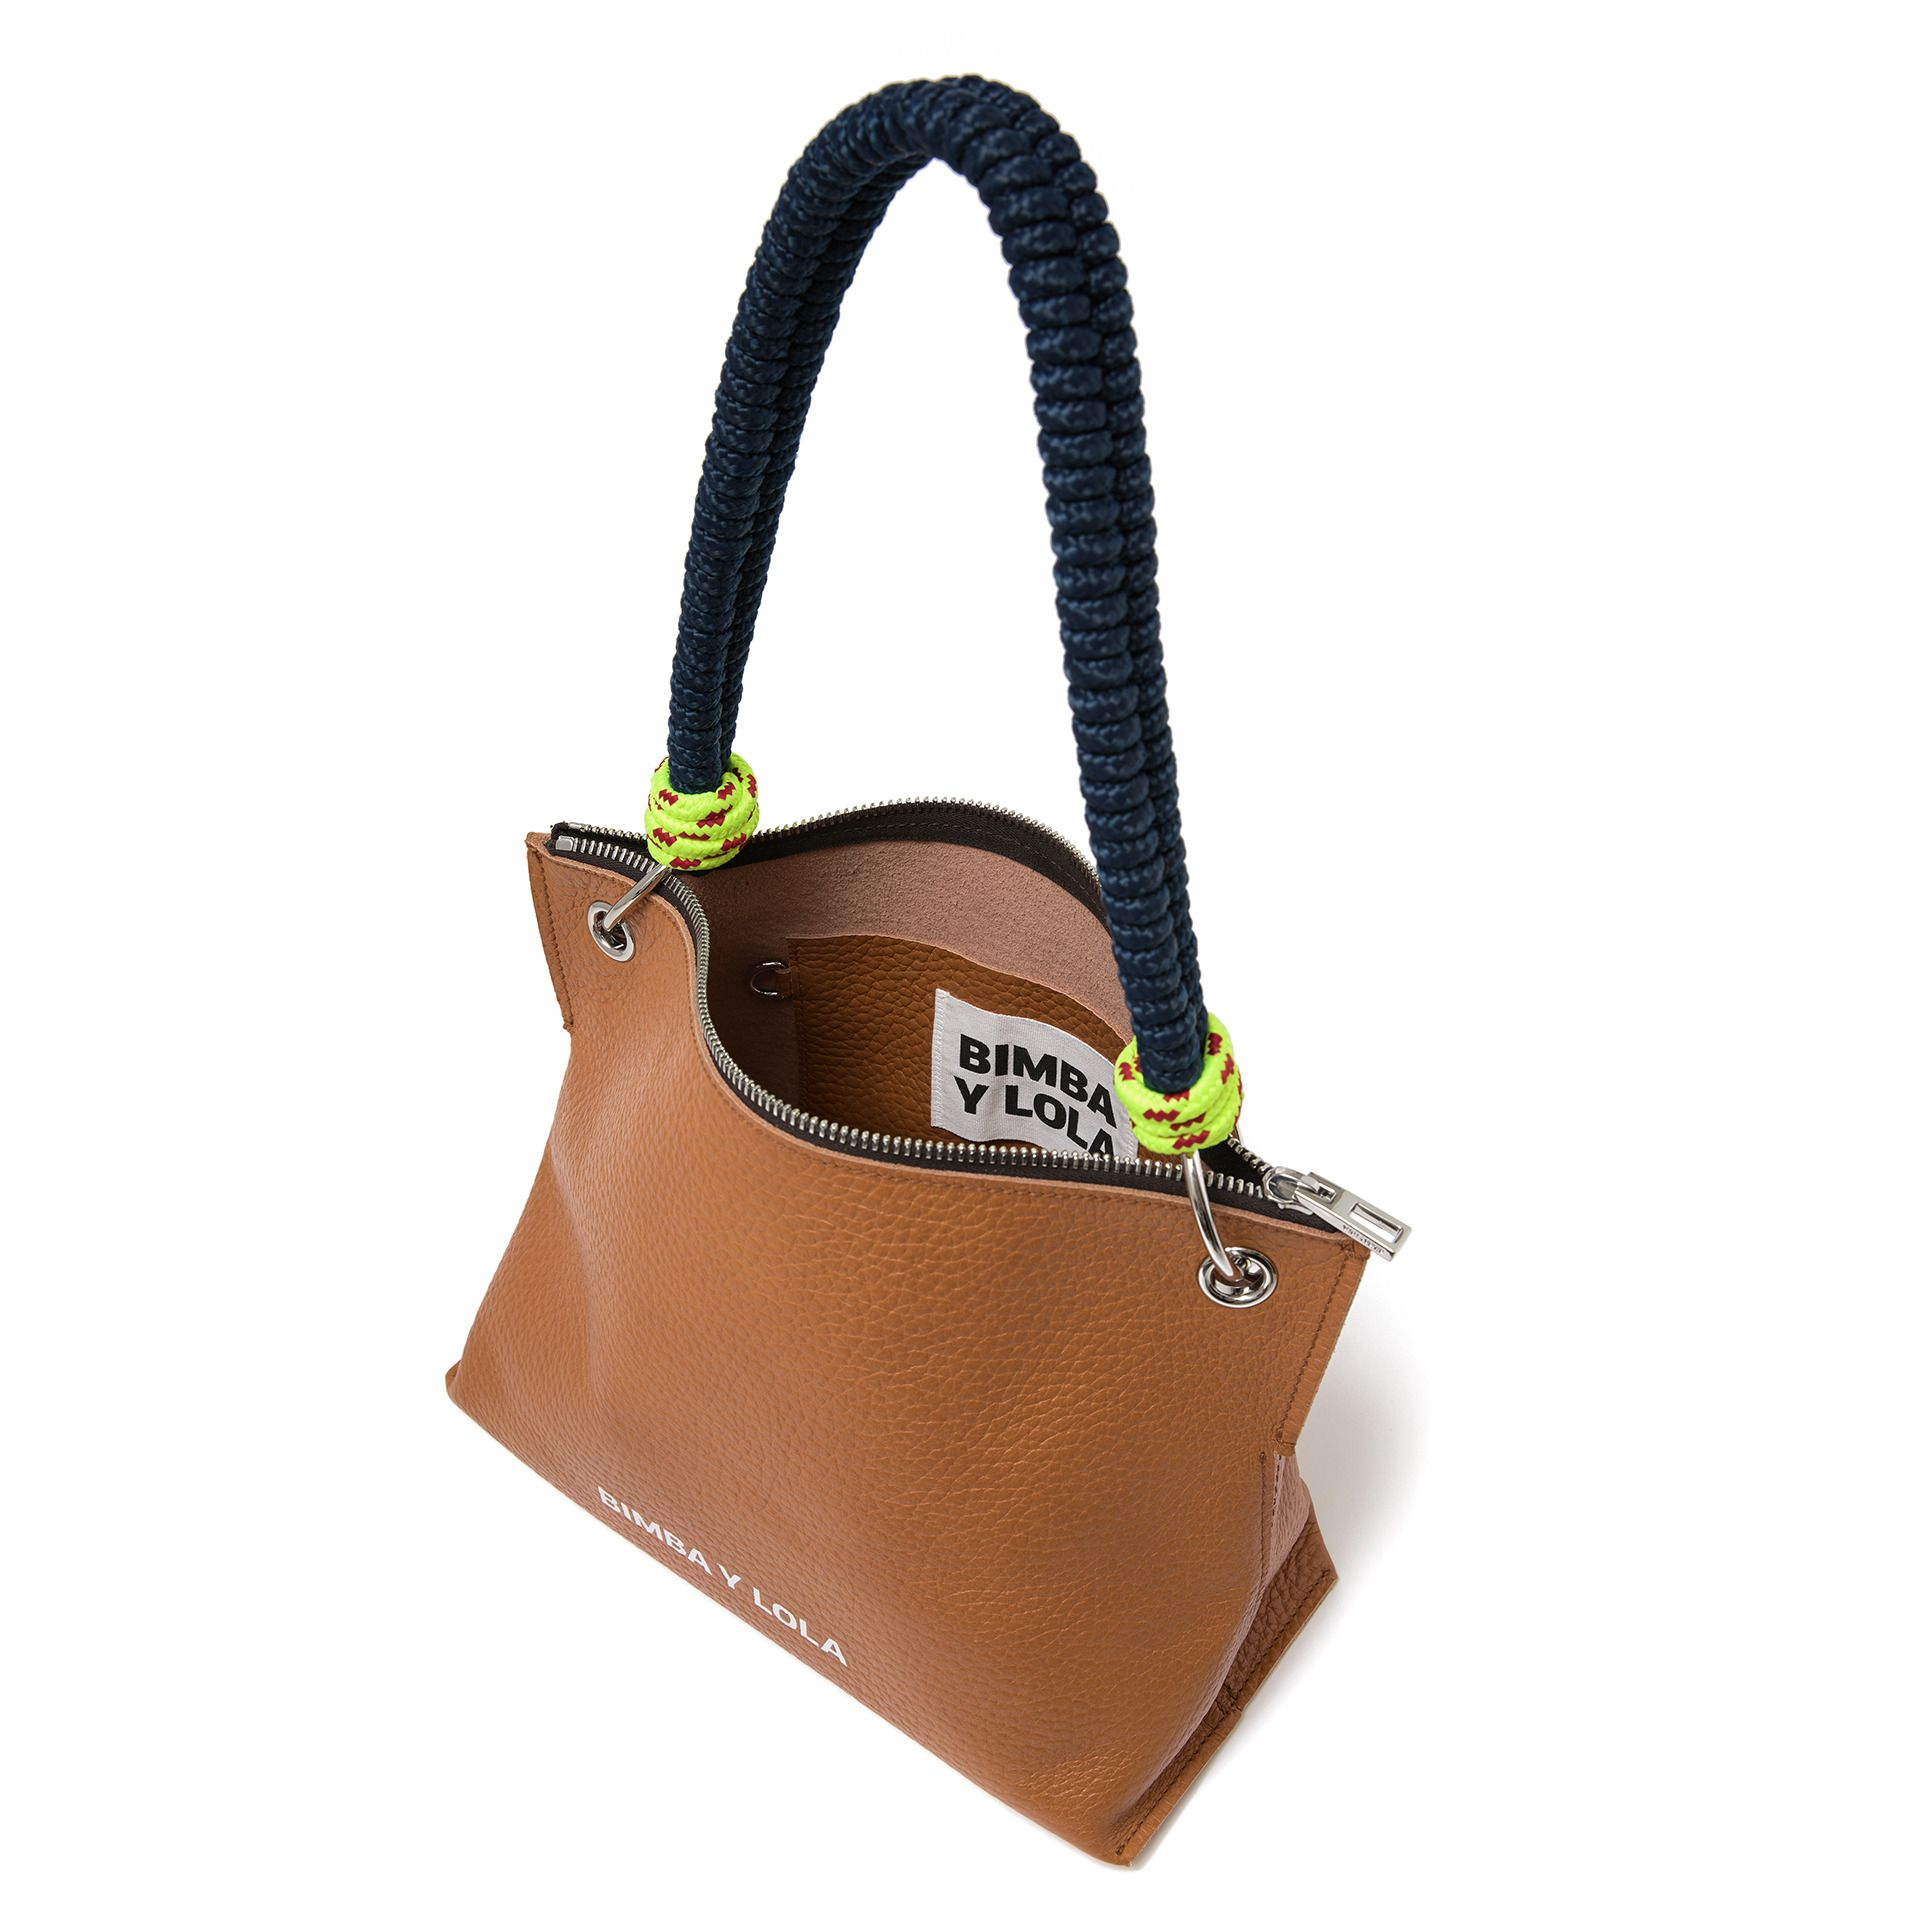 Large Tan Leather Trapezium Crossbody Bag Bolsos Bandolera Bolso Cruzado Bolso